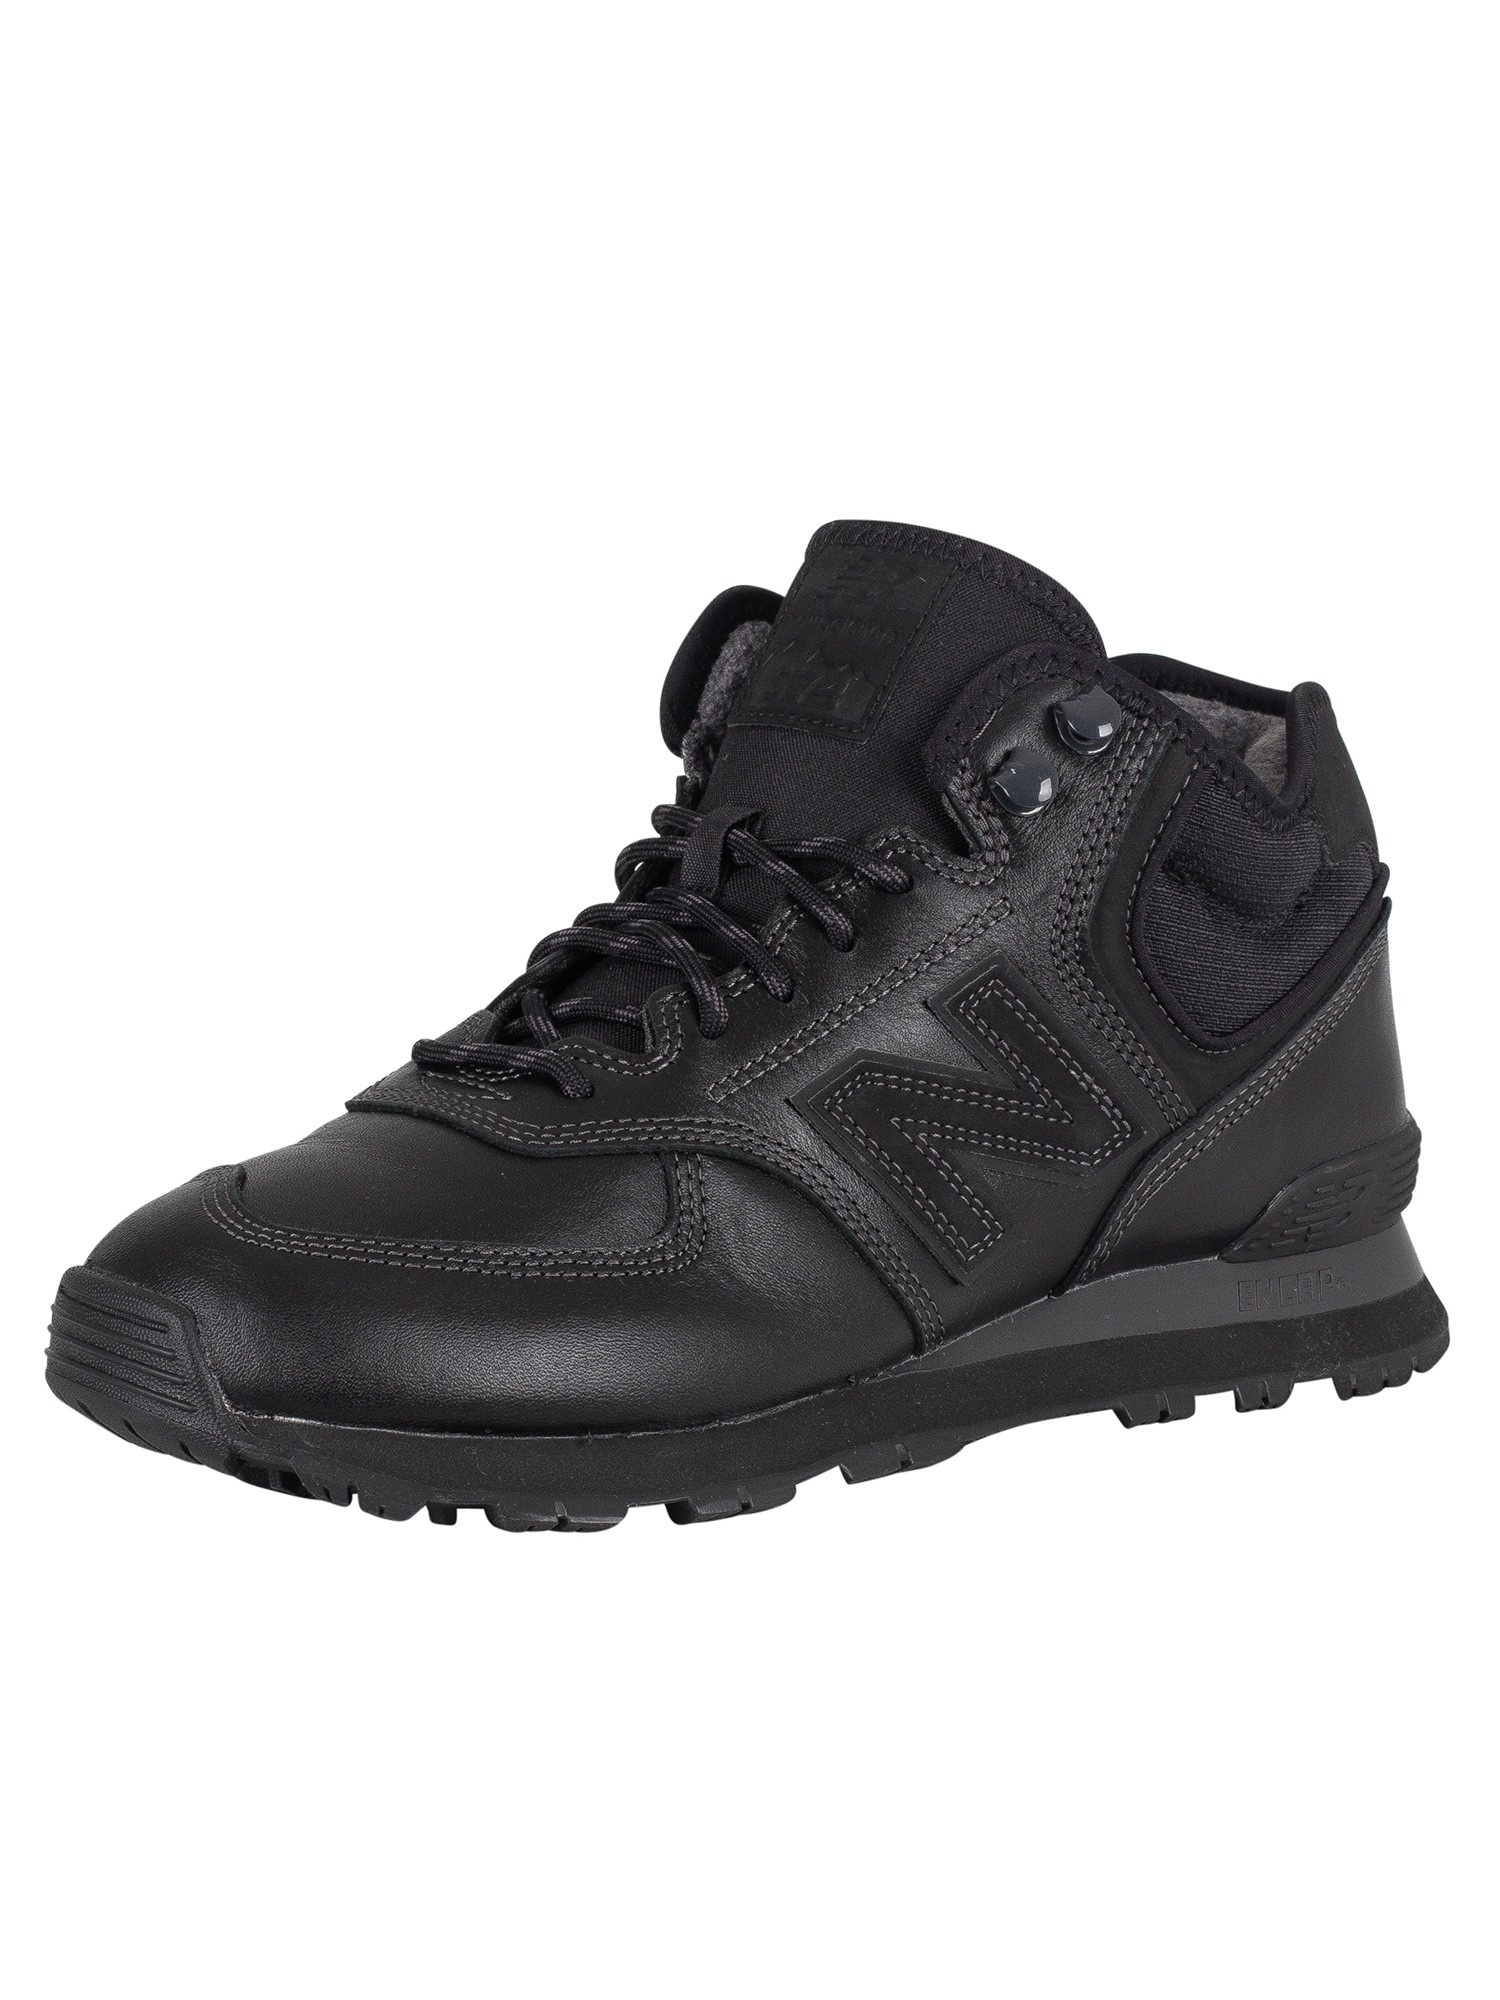 New Balance 574 Leather Boots - Black